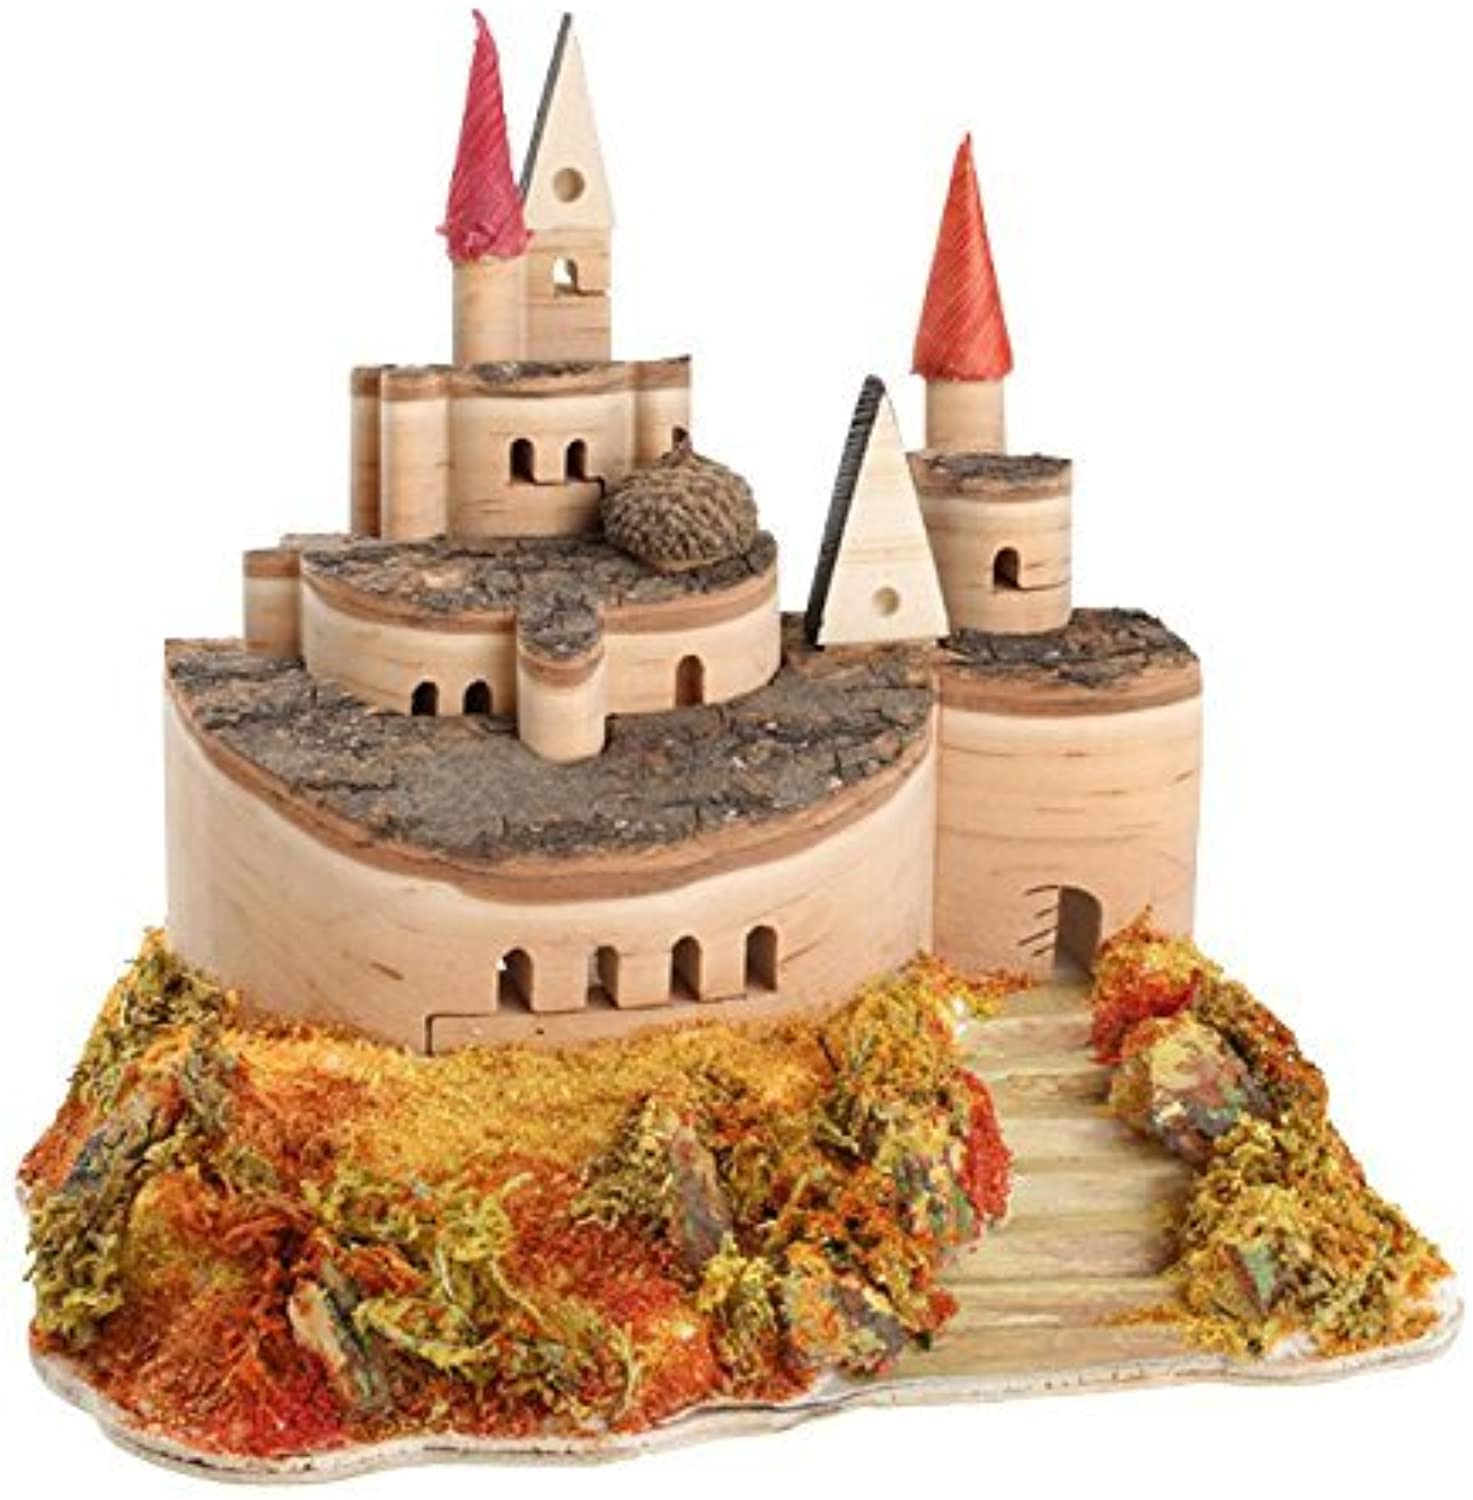 Legler Castle of Wood Courtyard Action Figure Playsets and Access by Legler